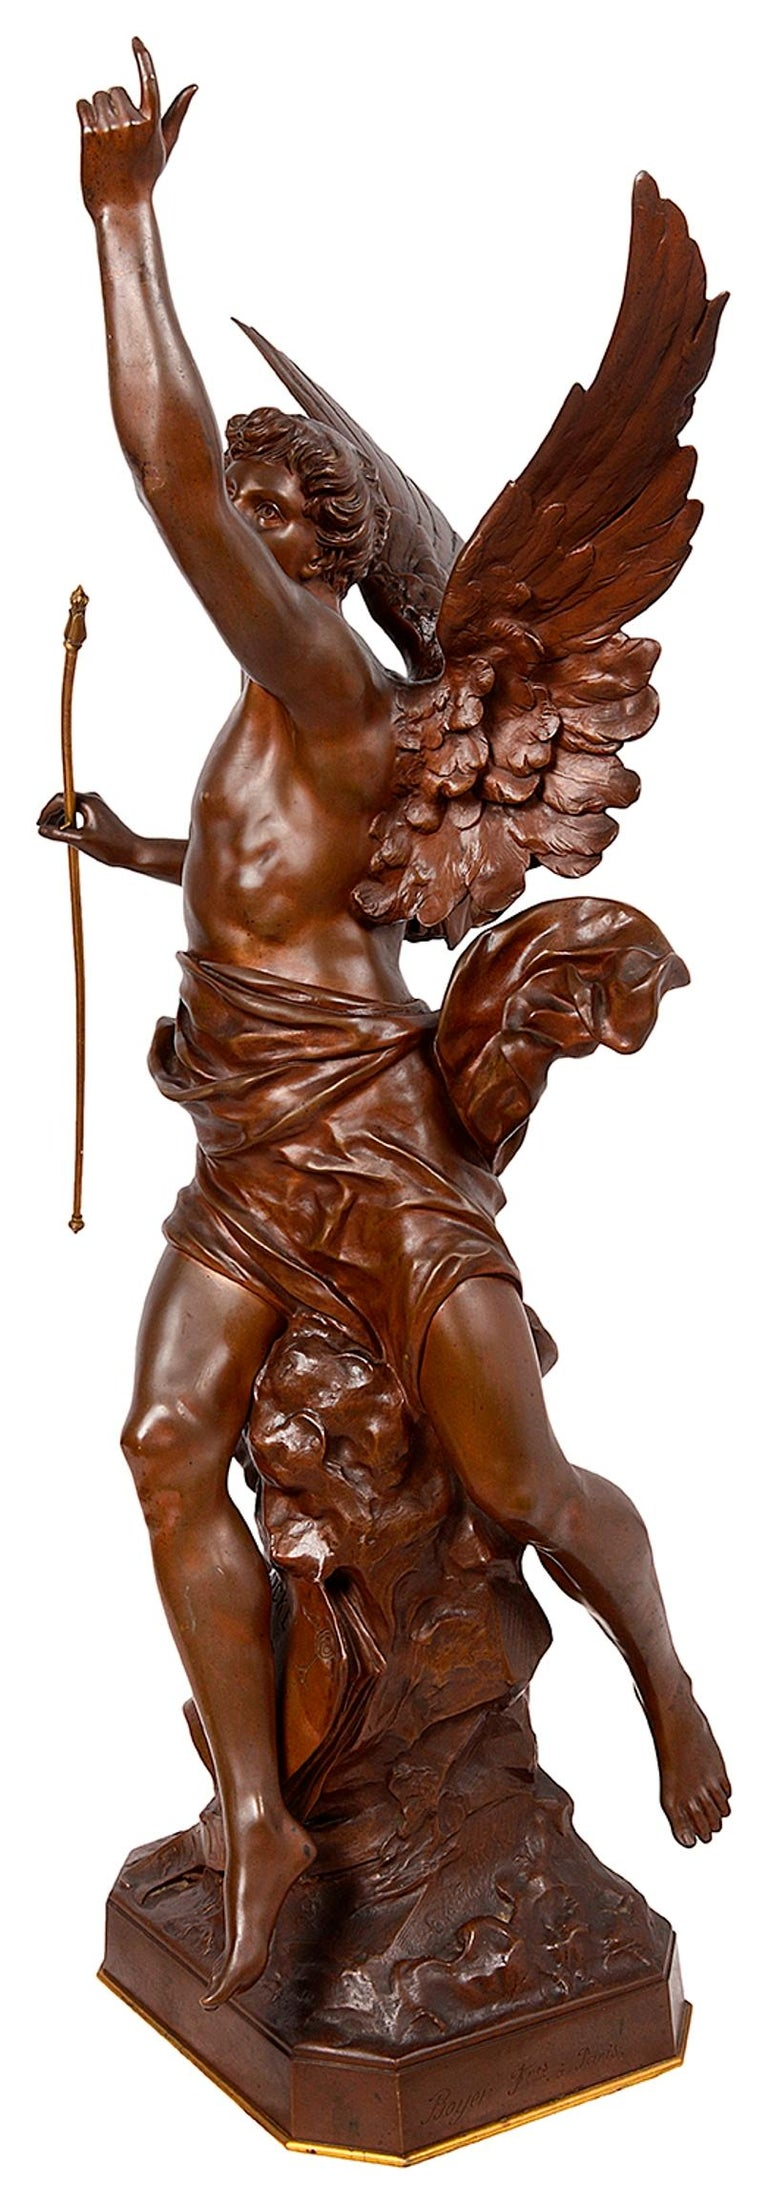 French Classical 19th Century Bronze Statue 'Thought' by Emile Picault For Sale